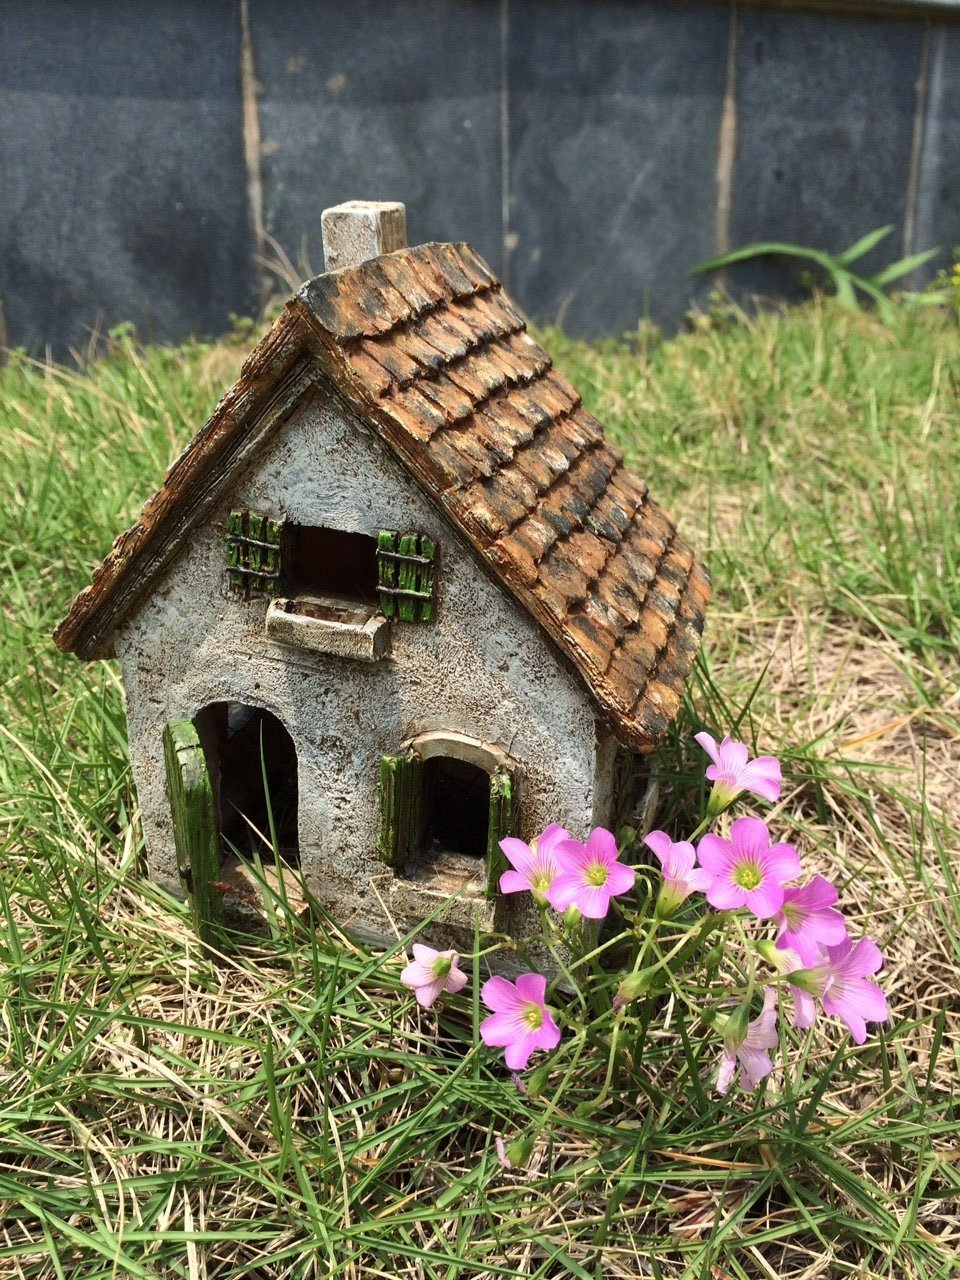 Fairy Garden House-Morning Glory Cottage with Swinging Door by WFG (Image #3)